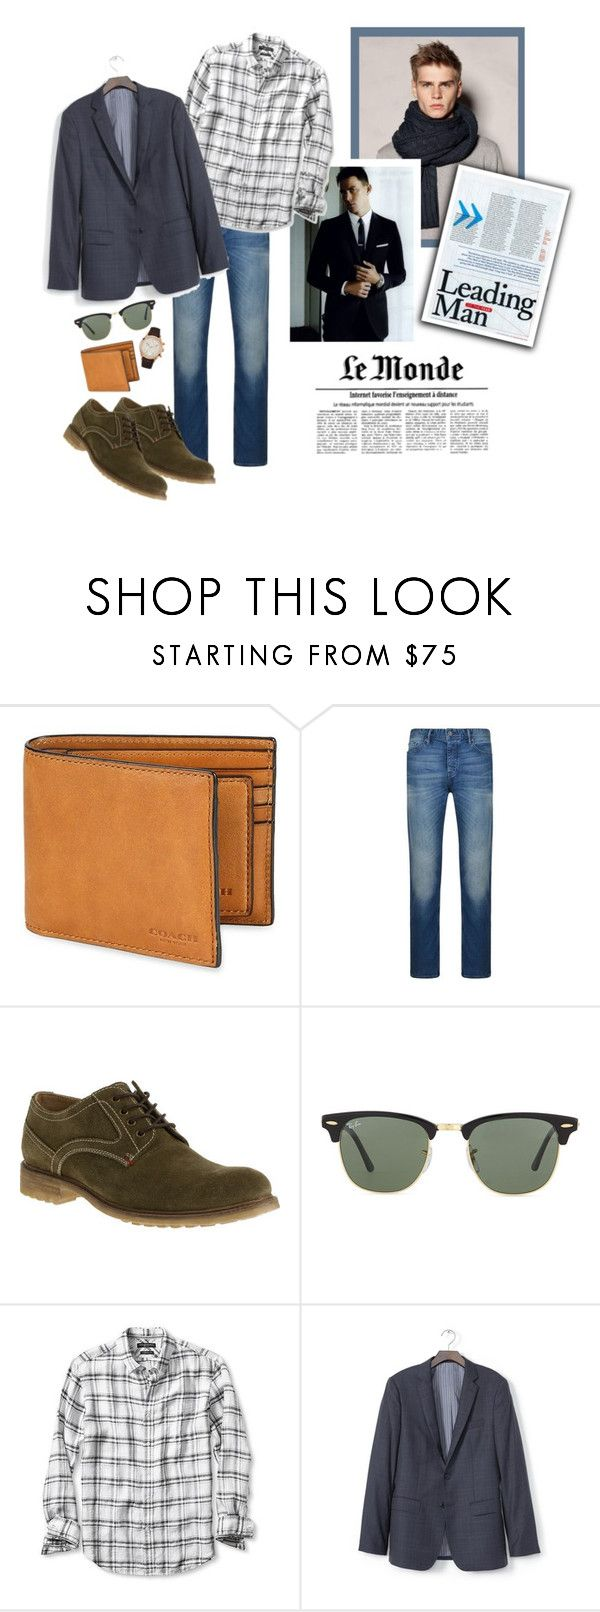 What's Up? by youaresofashion on Polyvore featuring Banana Republic, Hush Puppies, Bulova, Ray-Ban, Coach, BOSS Orange, men's fashion, menswear and wardrobebasics